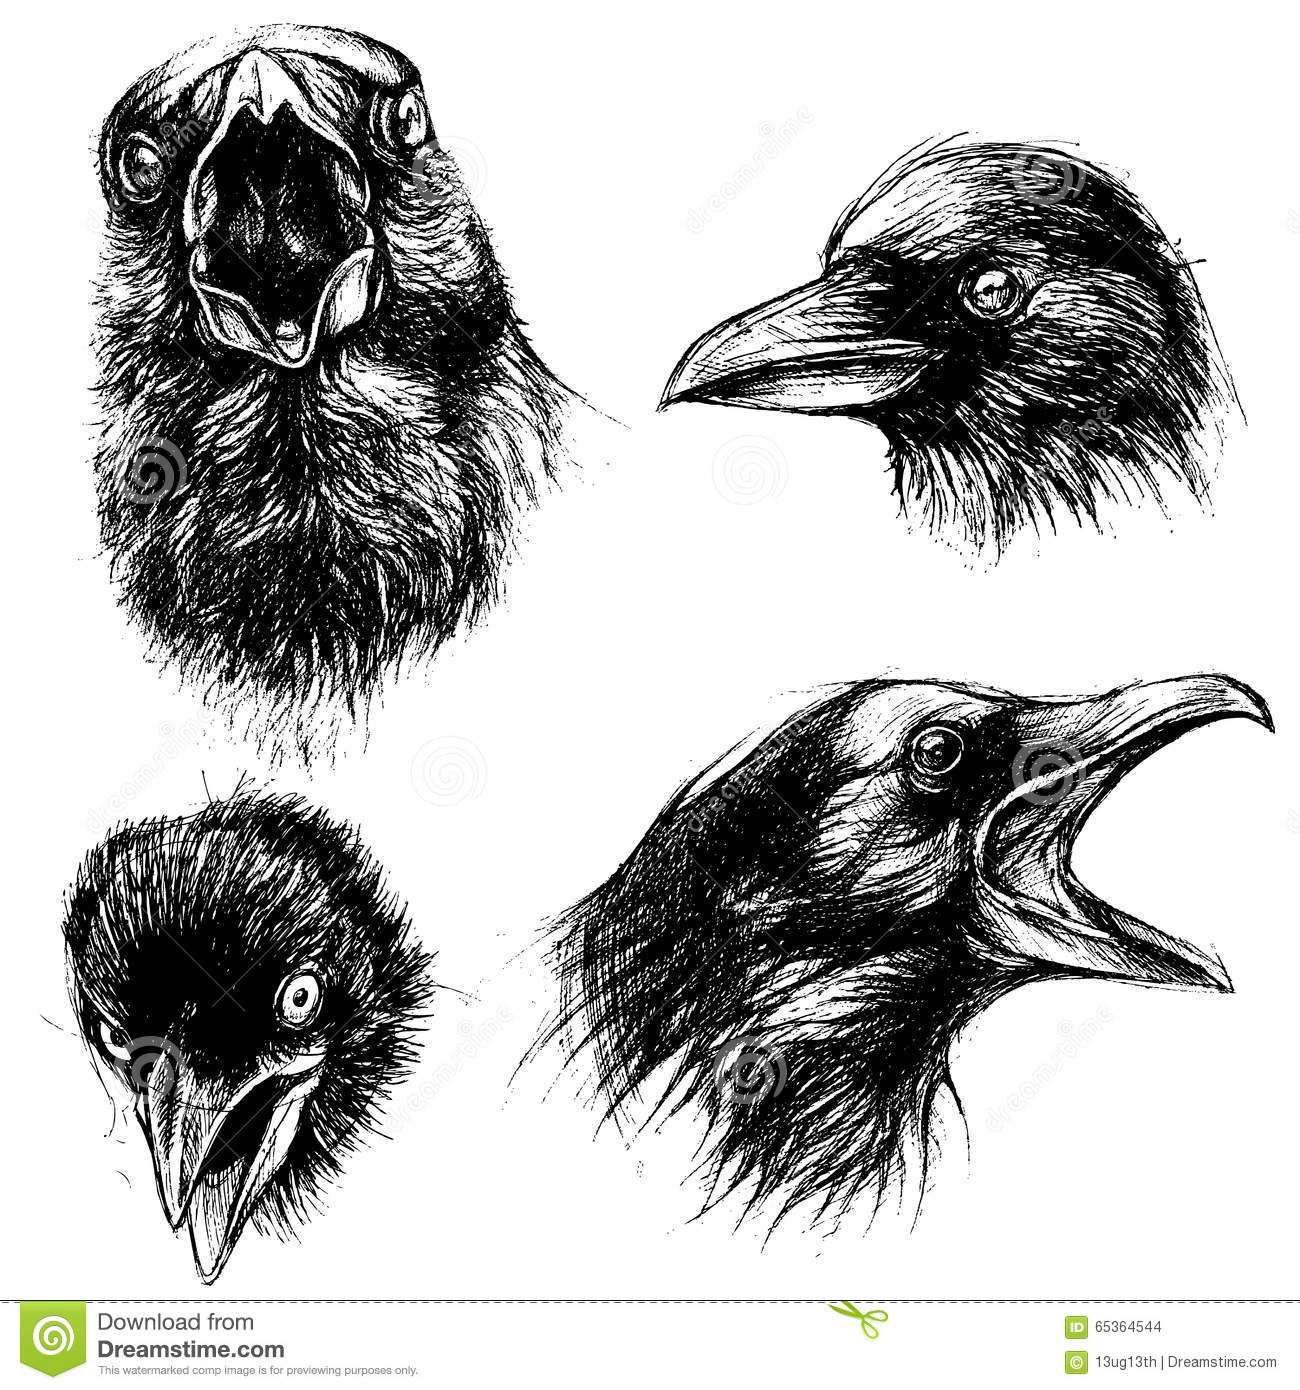 Drawing Lines Using Svg : Crow head drawing line work vector illustration